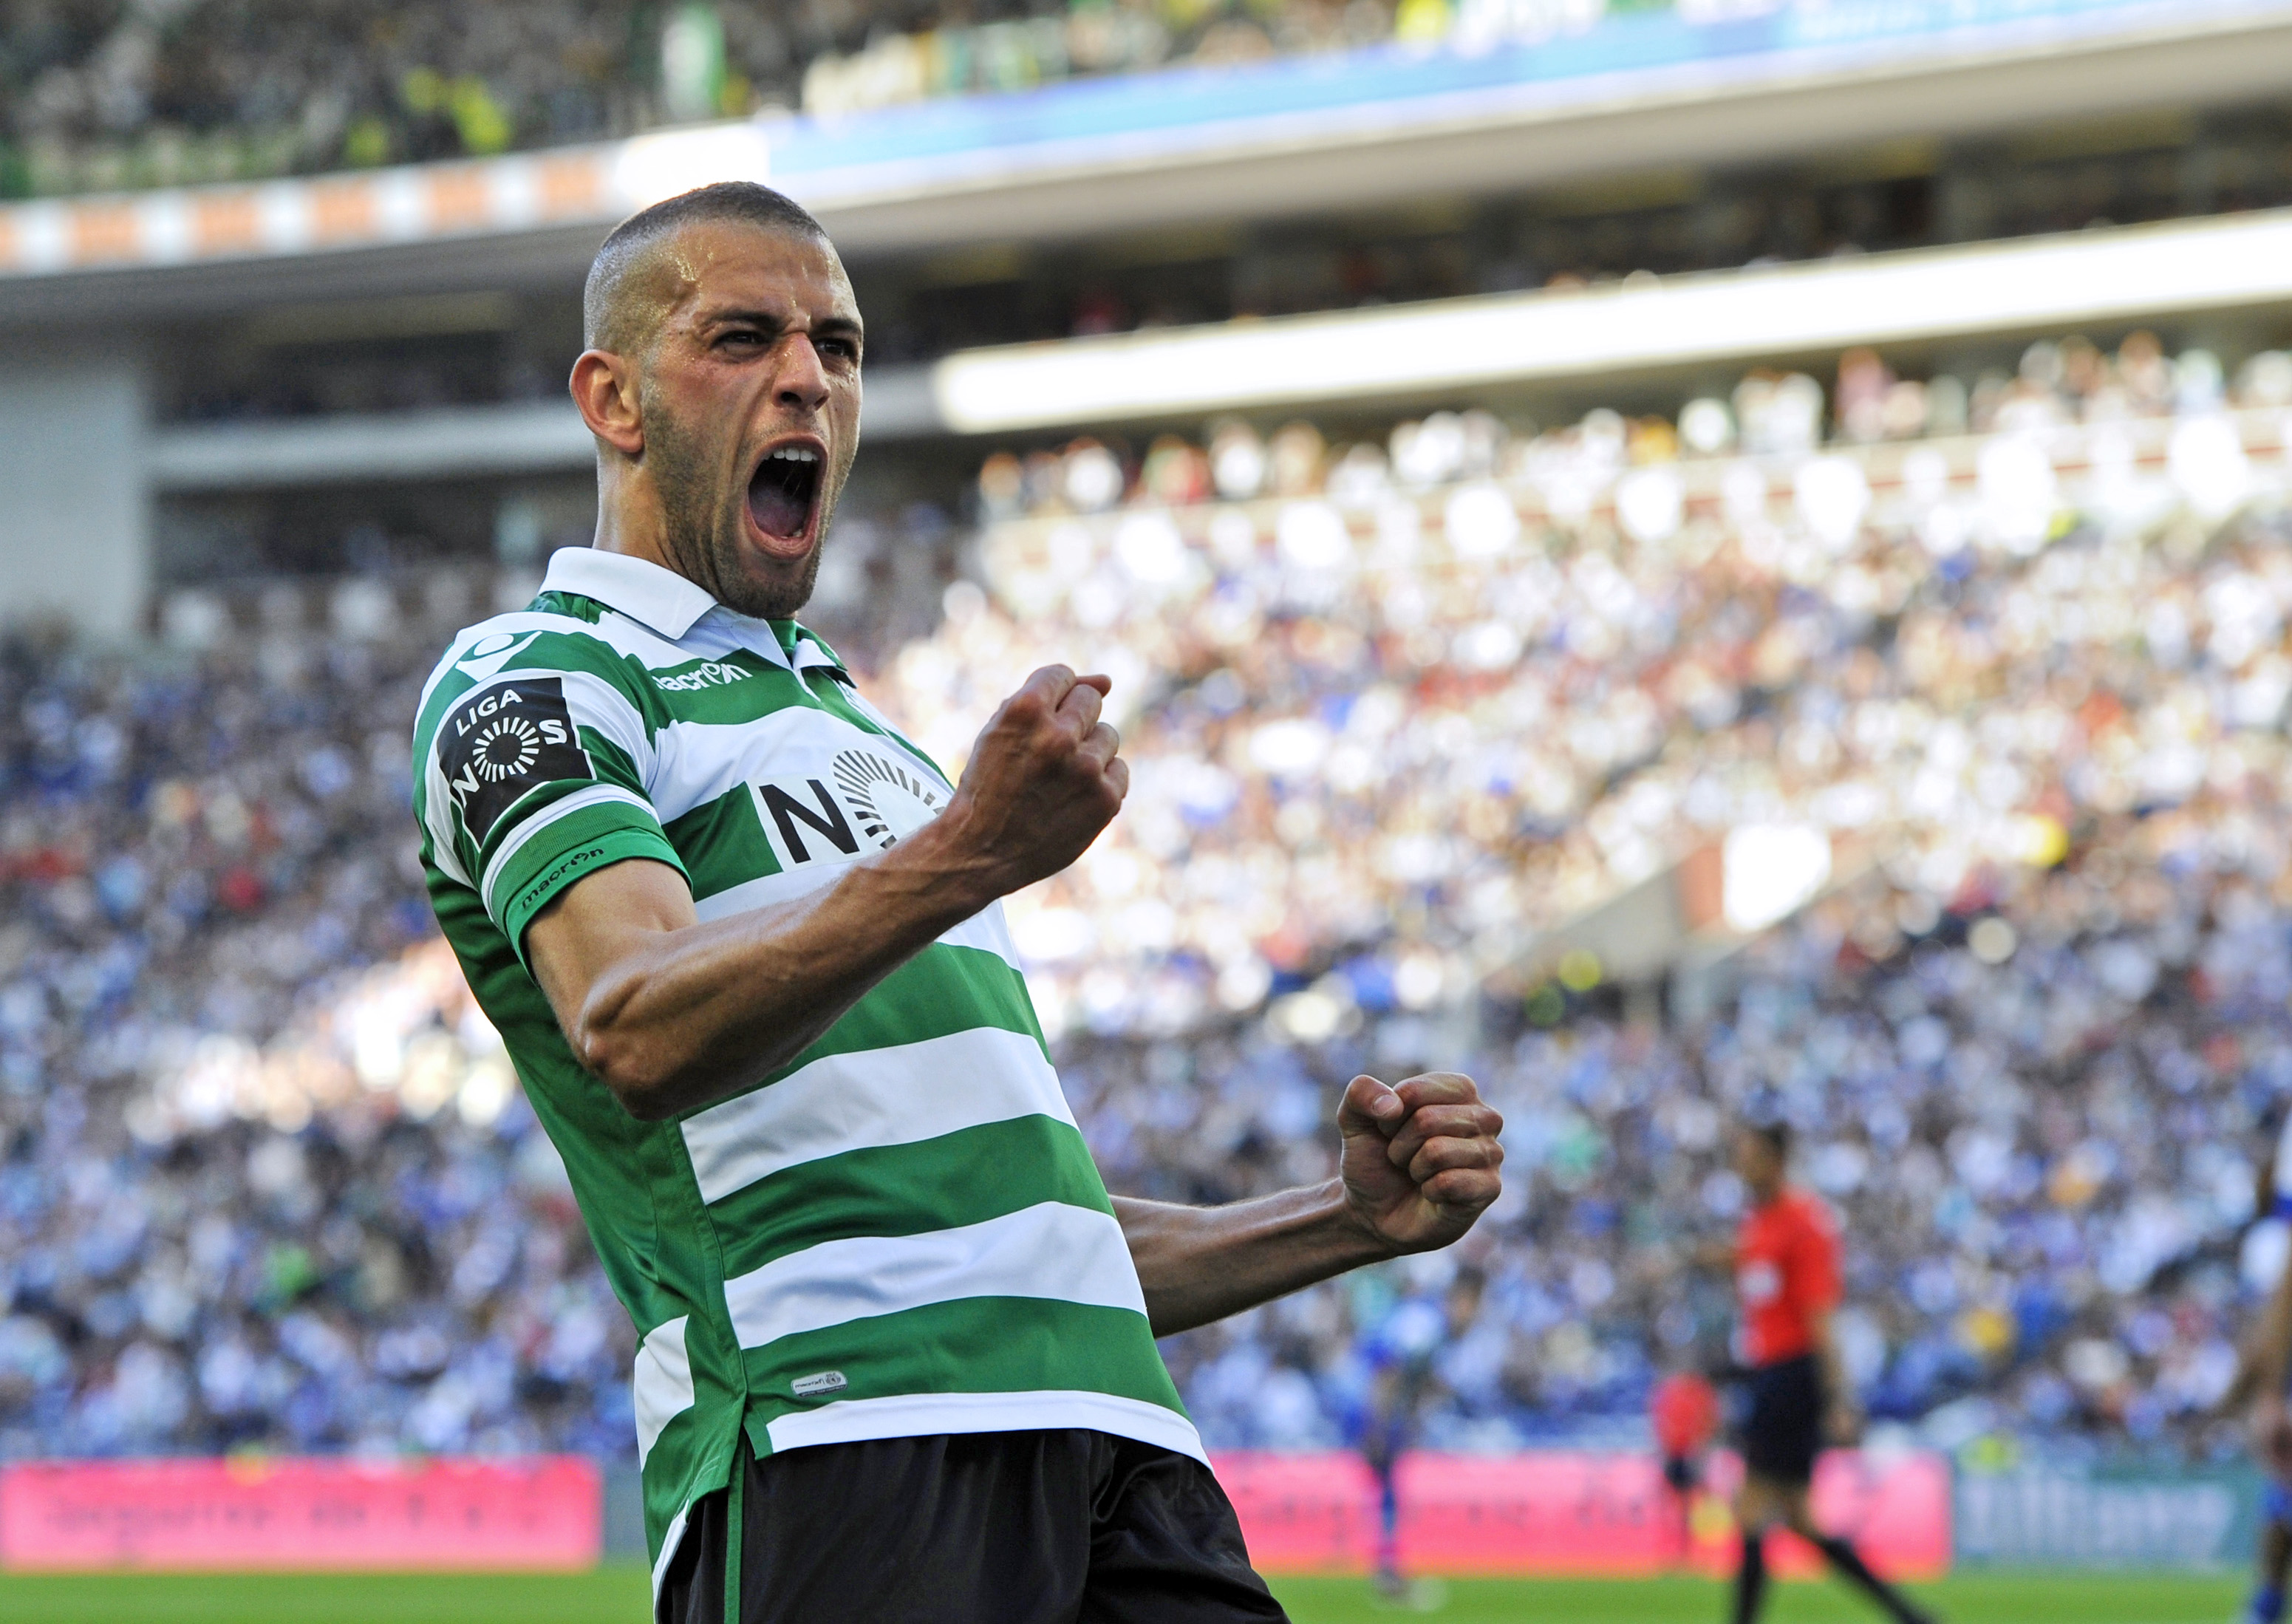 Sporting's Algerian forward Islam Slimani celebrates a goal during the Portuguese league football match FC Porto vs Sporting CP at the Dragao stadium in Porto on April 30, 2016. / AFP / MIGUEL RIOPA (Photo credit should read MIGUEL RIOPA/AFP/Getty Images)